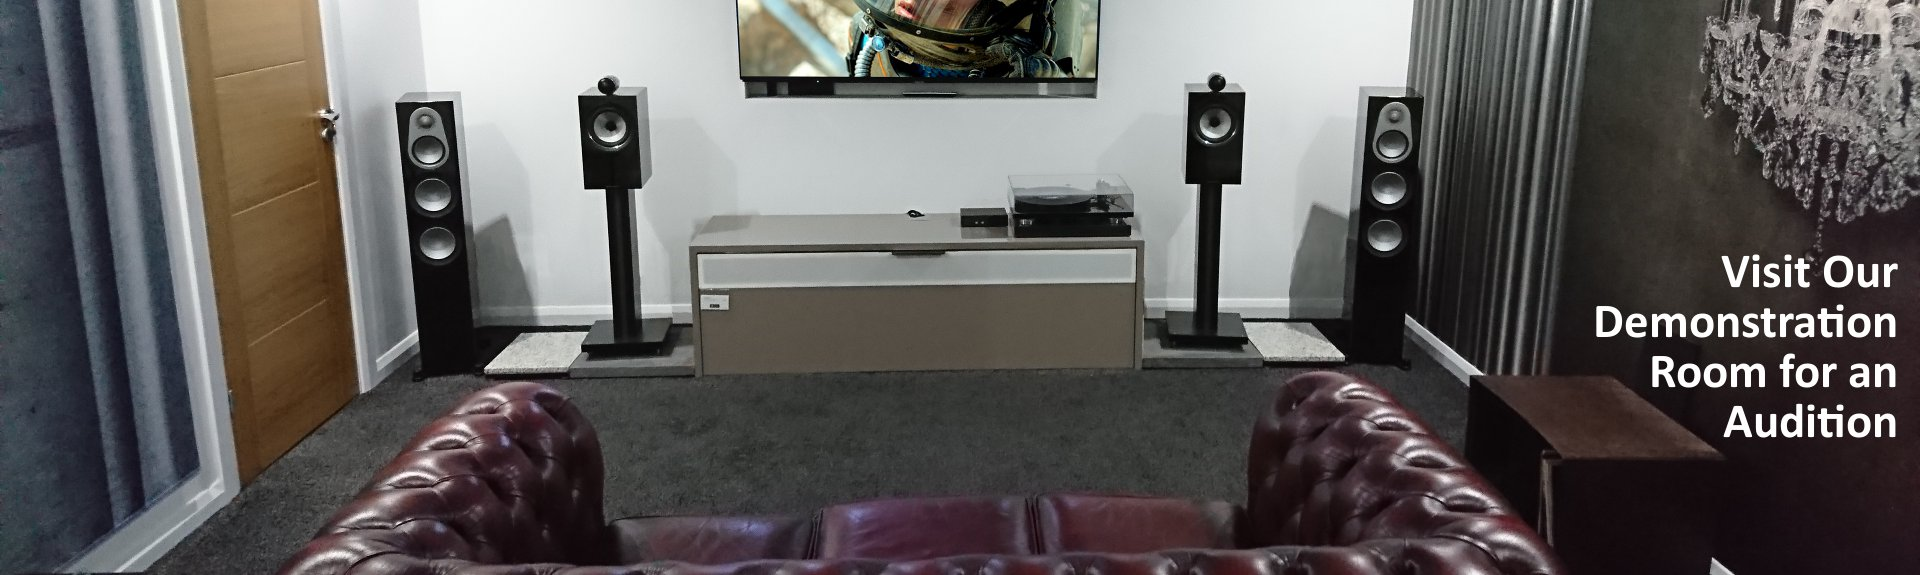 Ortons Audio Visual Hifi Home Cinema Multiroom Custom Install